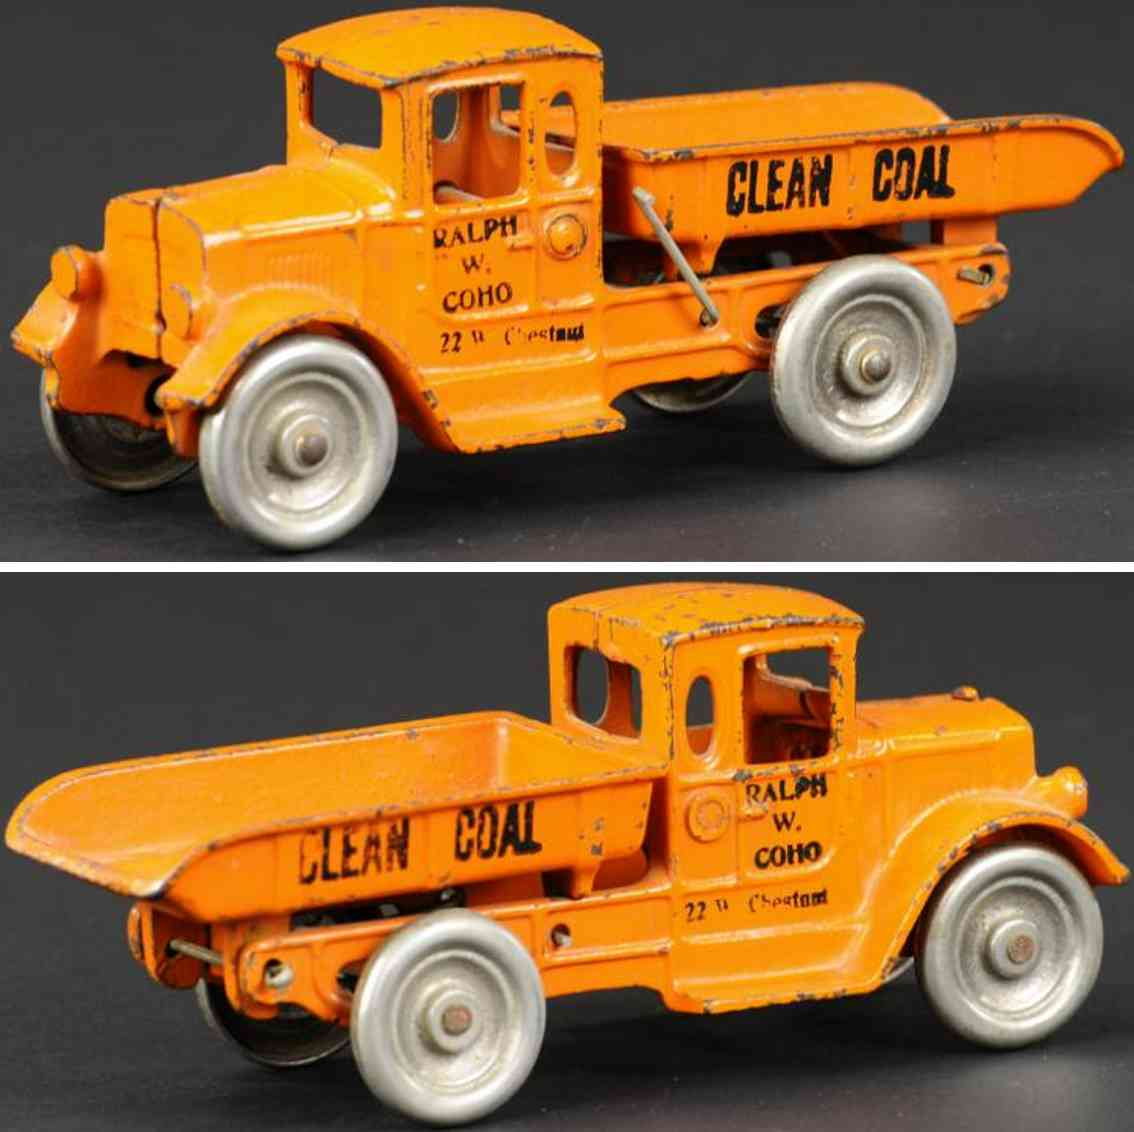 kilgore cast iron toy dump truck coal orange